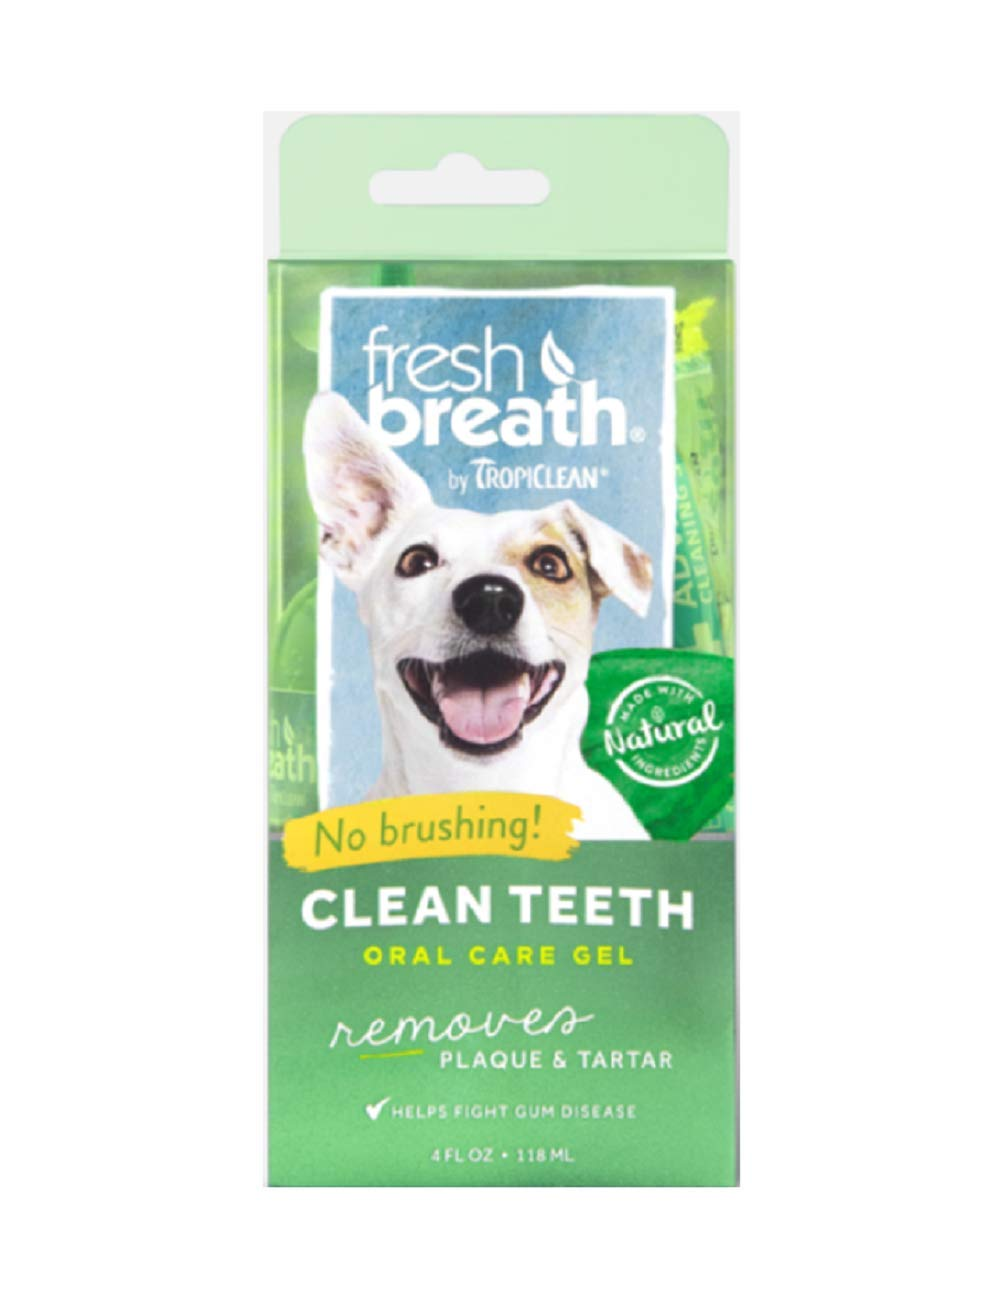 TropiClean Clean Teeth Gel For Dogs Promotes Strong Teeth & Healthy Gums 4 oz(1 Box) by TropiClean